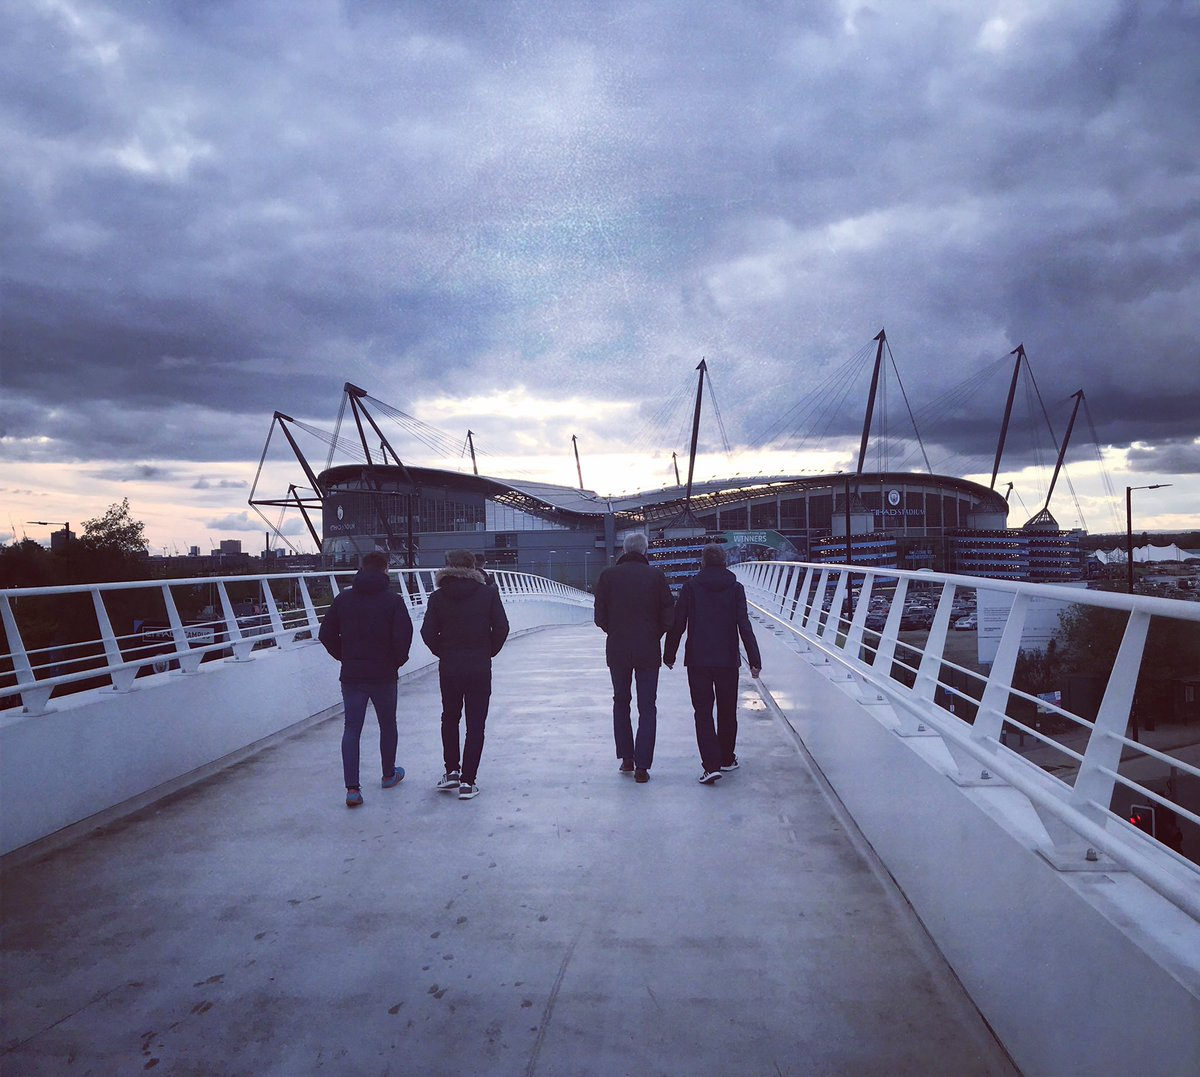 Have you done a @ManCity photo shoot with the bridge connecting to the campus? (David Silva leaving shoot maybe?) We walk over it every match day.pic.twitter.com/WAkTbQm6xR